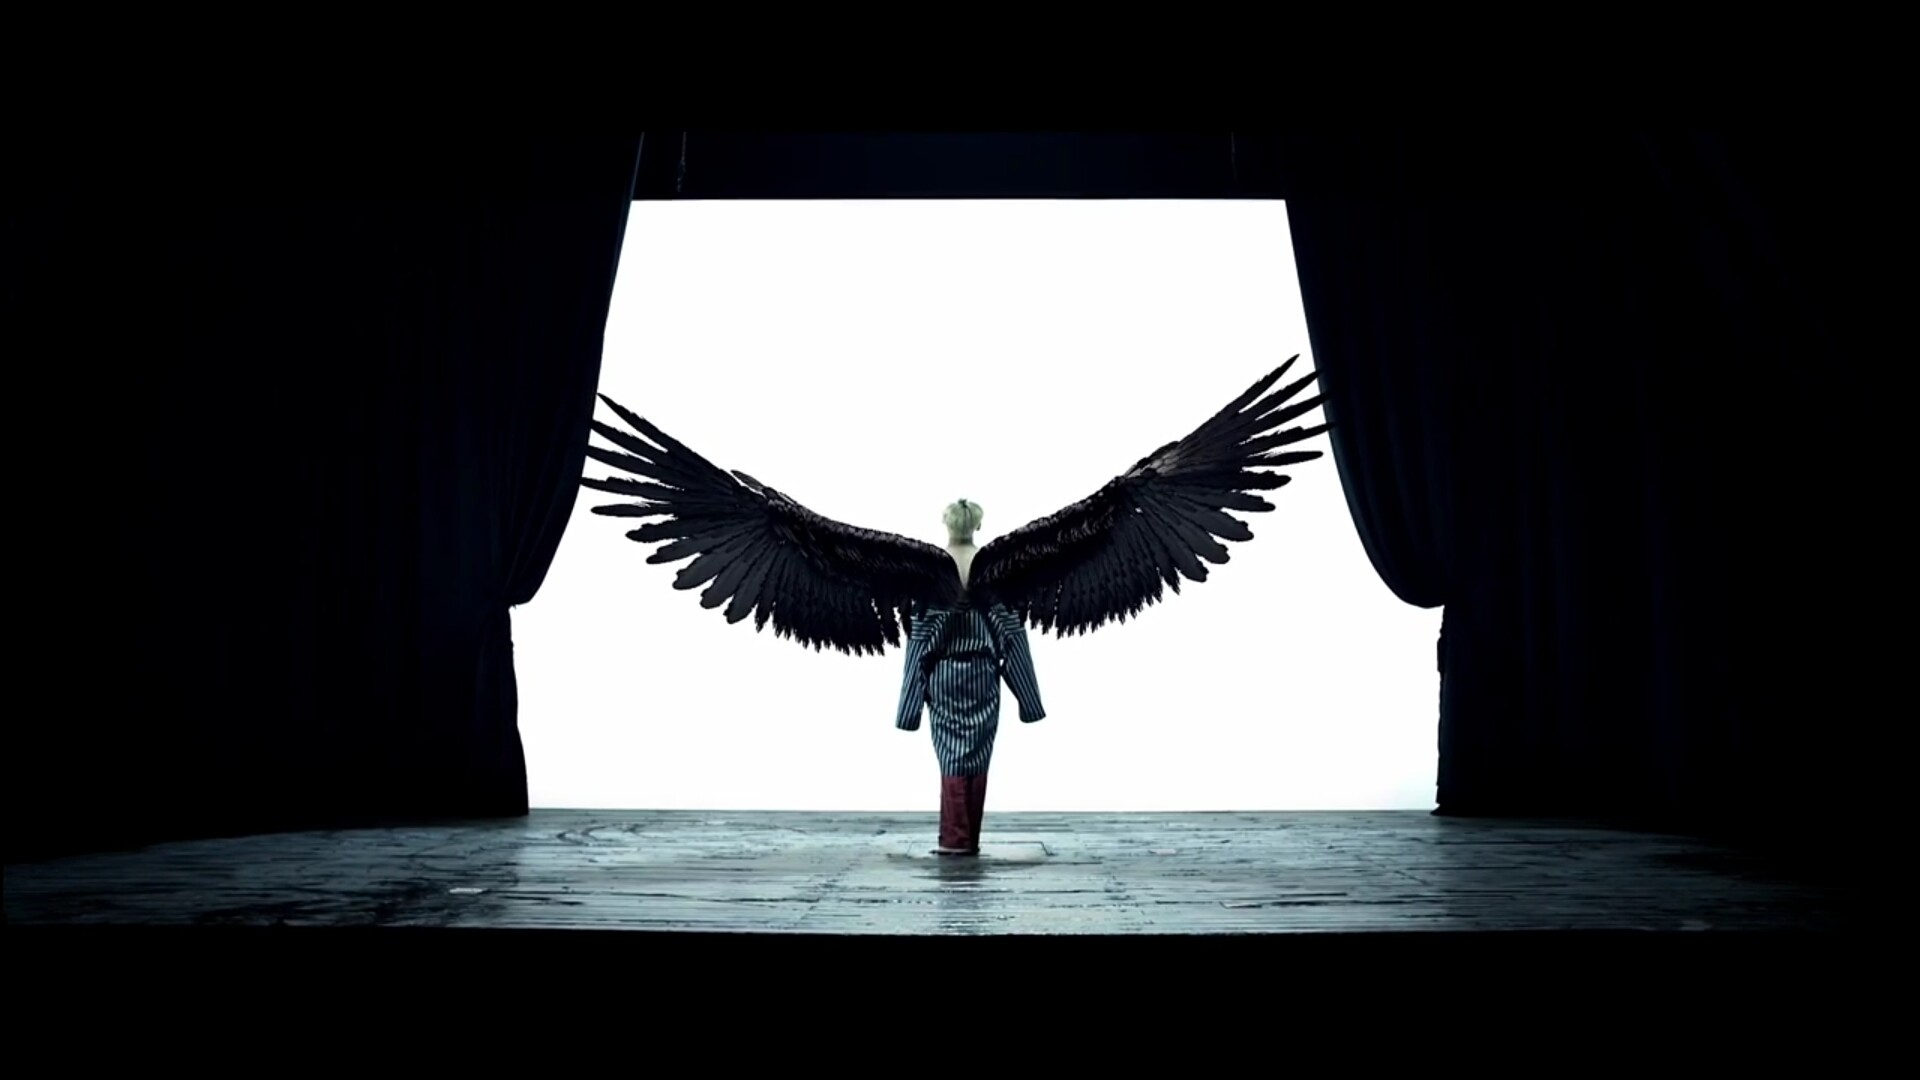 694345 download bts wings wallpapers 1920x1080 for 1080p